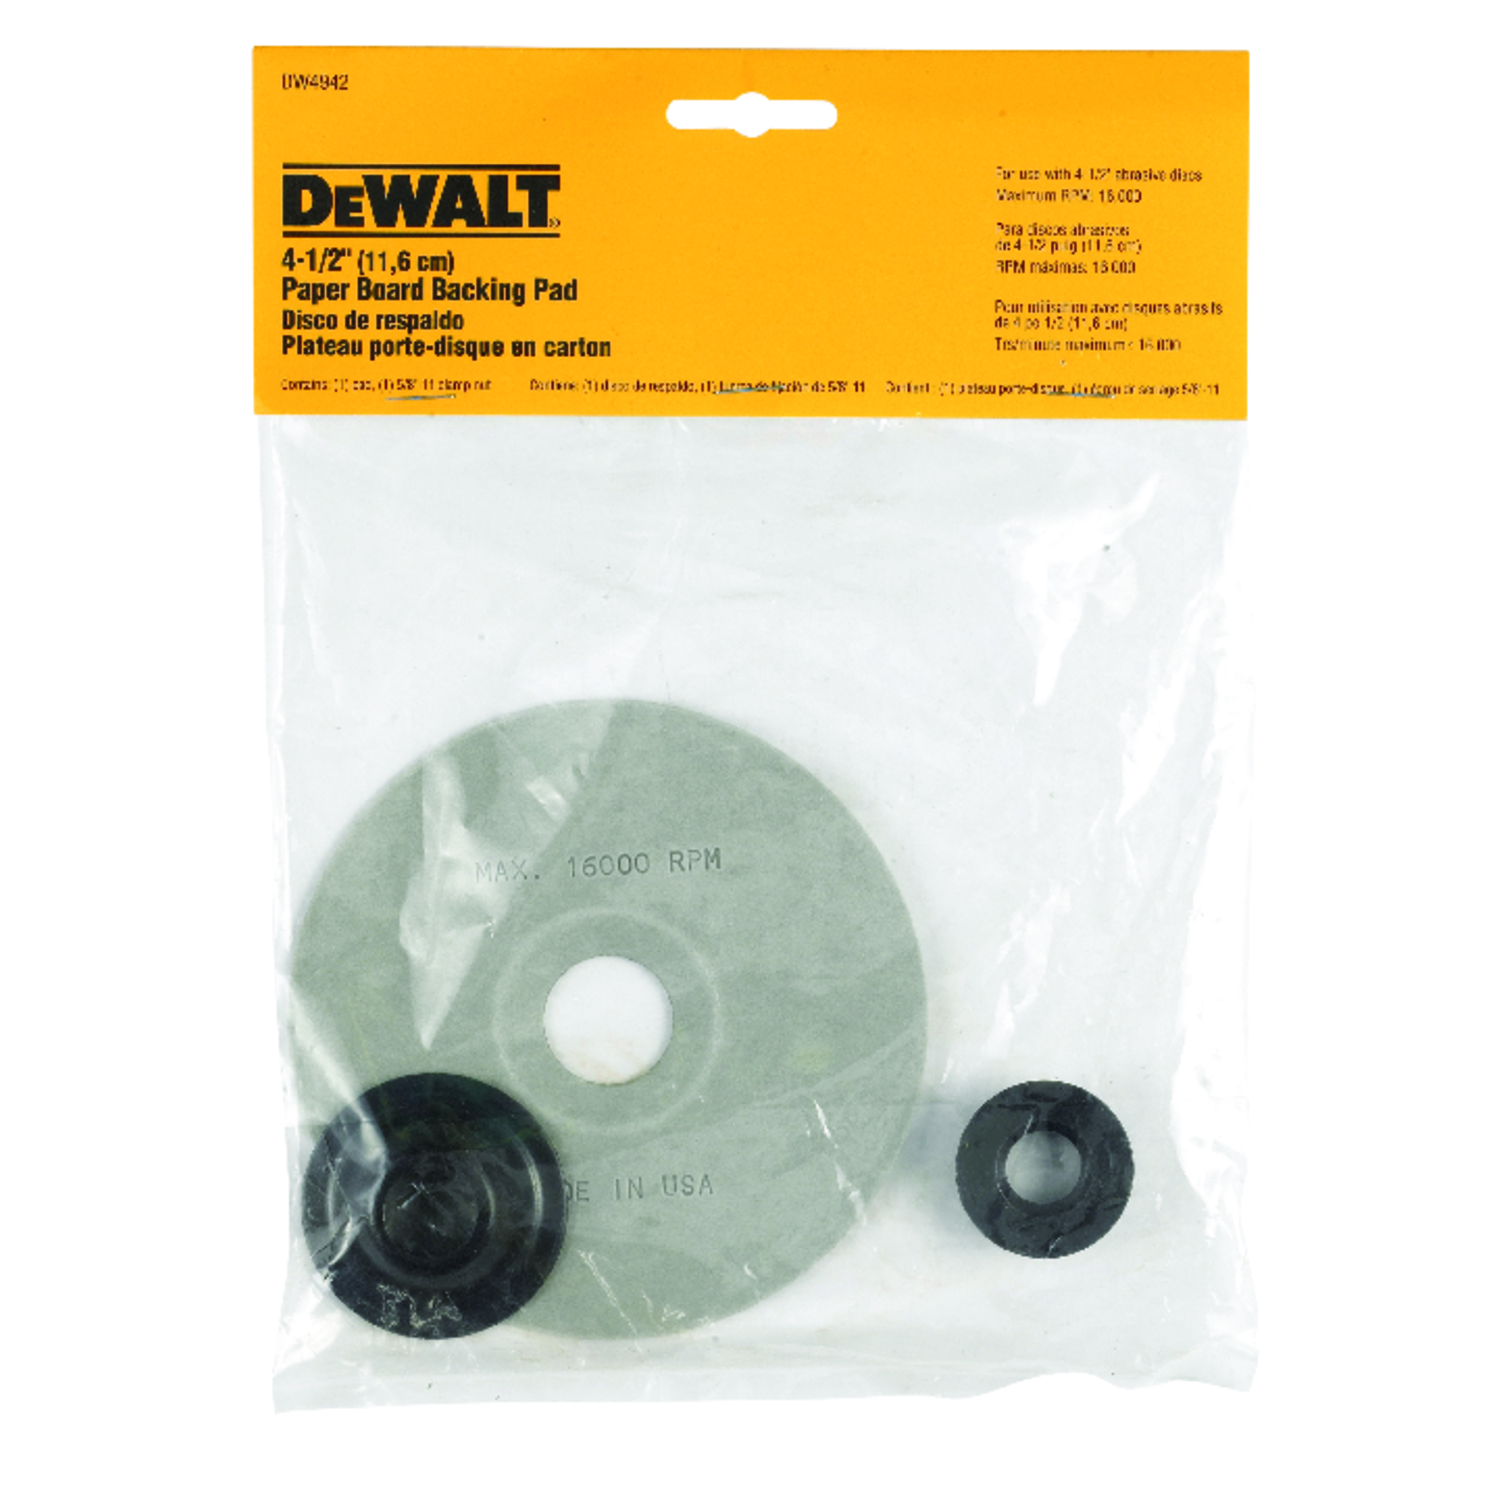 DeWalt  4-1/2 in. Dia. x 5/8 in.   Paper  Backing Pad  8500 rpm 1